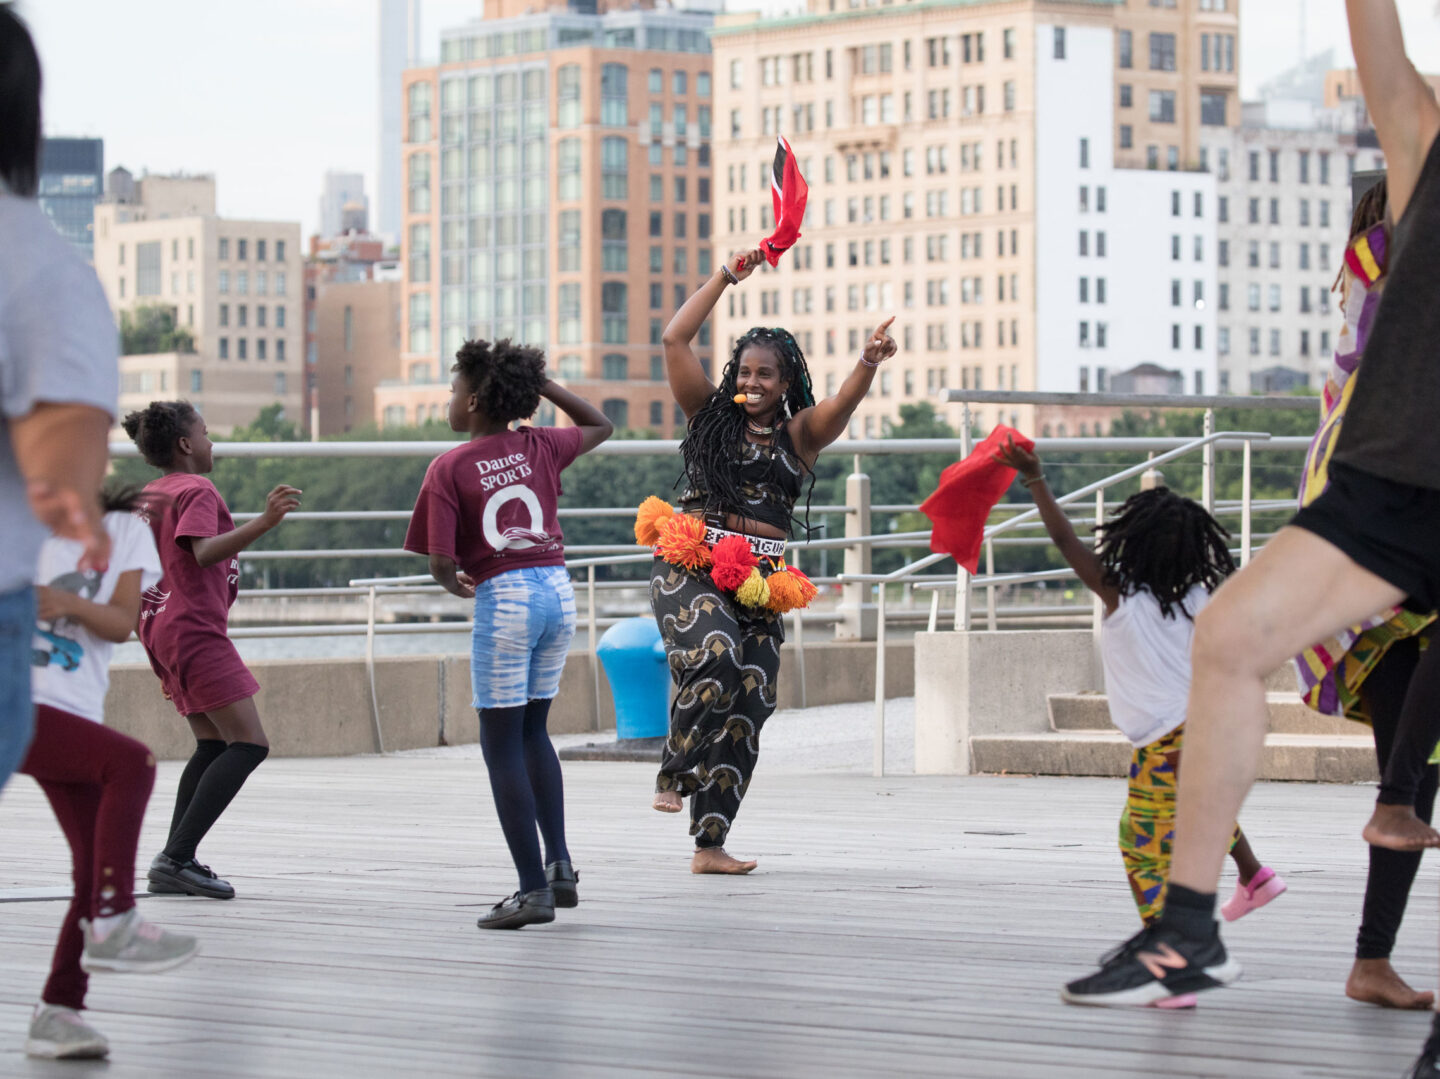 Batingua Arts dance lesson and performance at Pier 45 in Hudson River Park